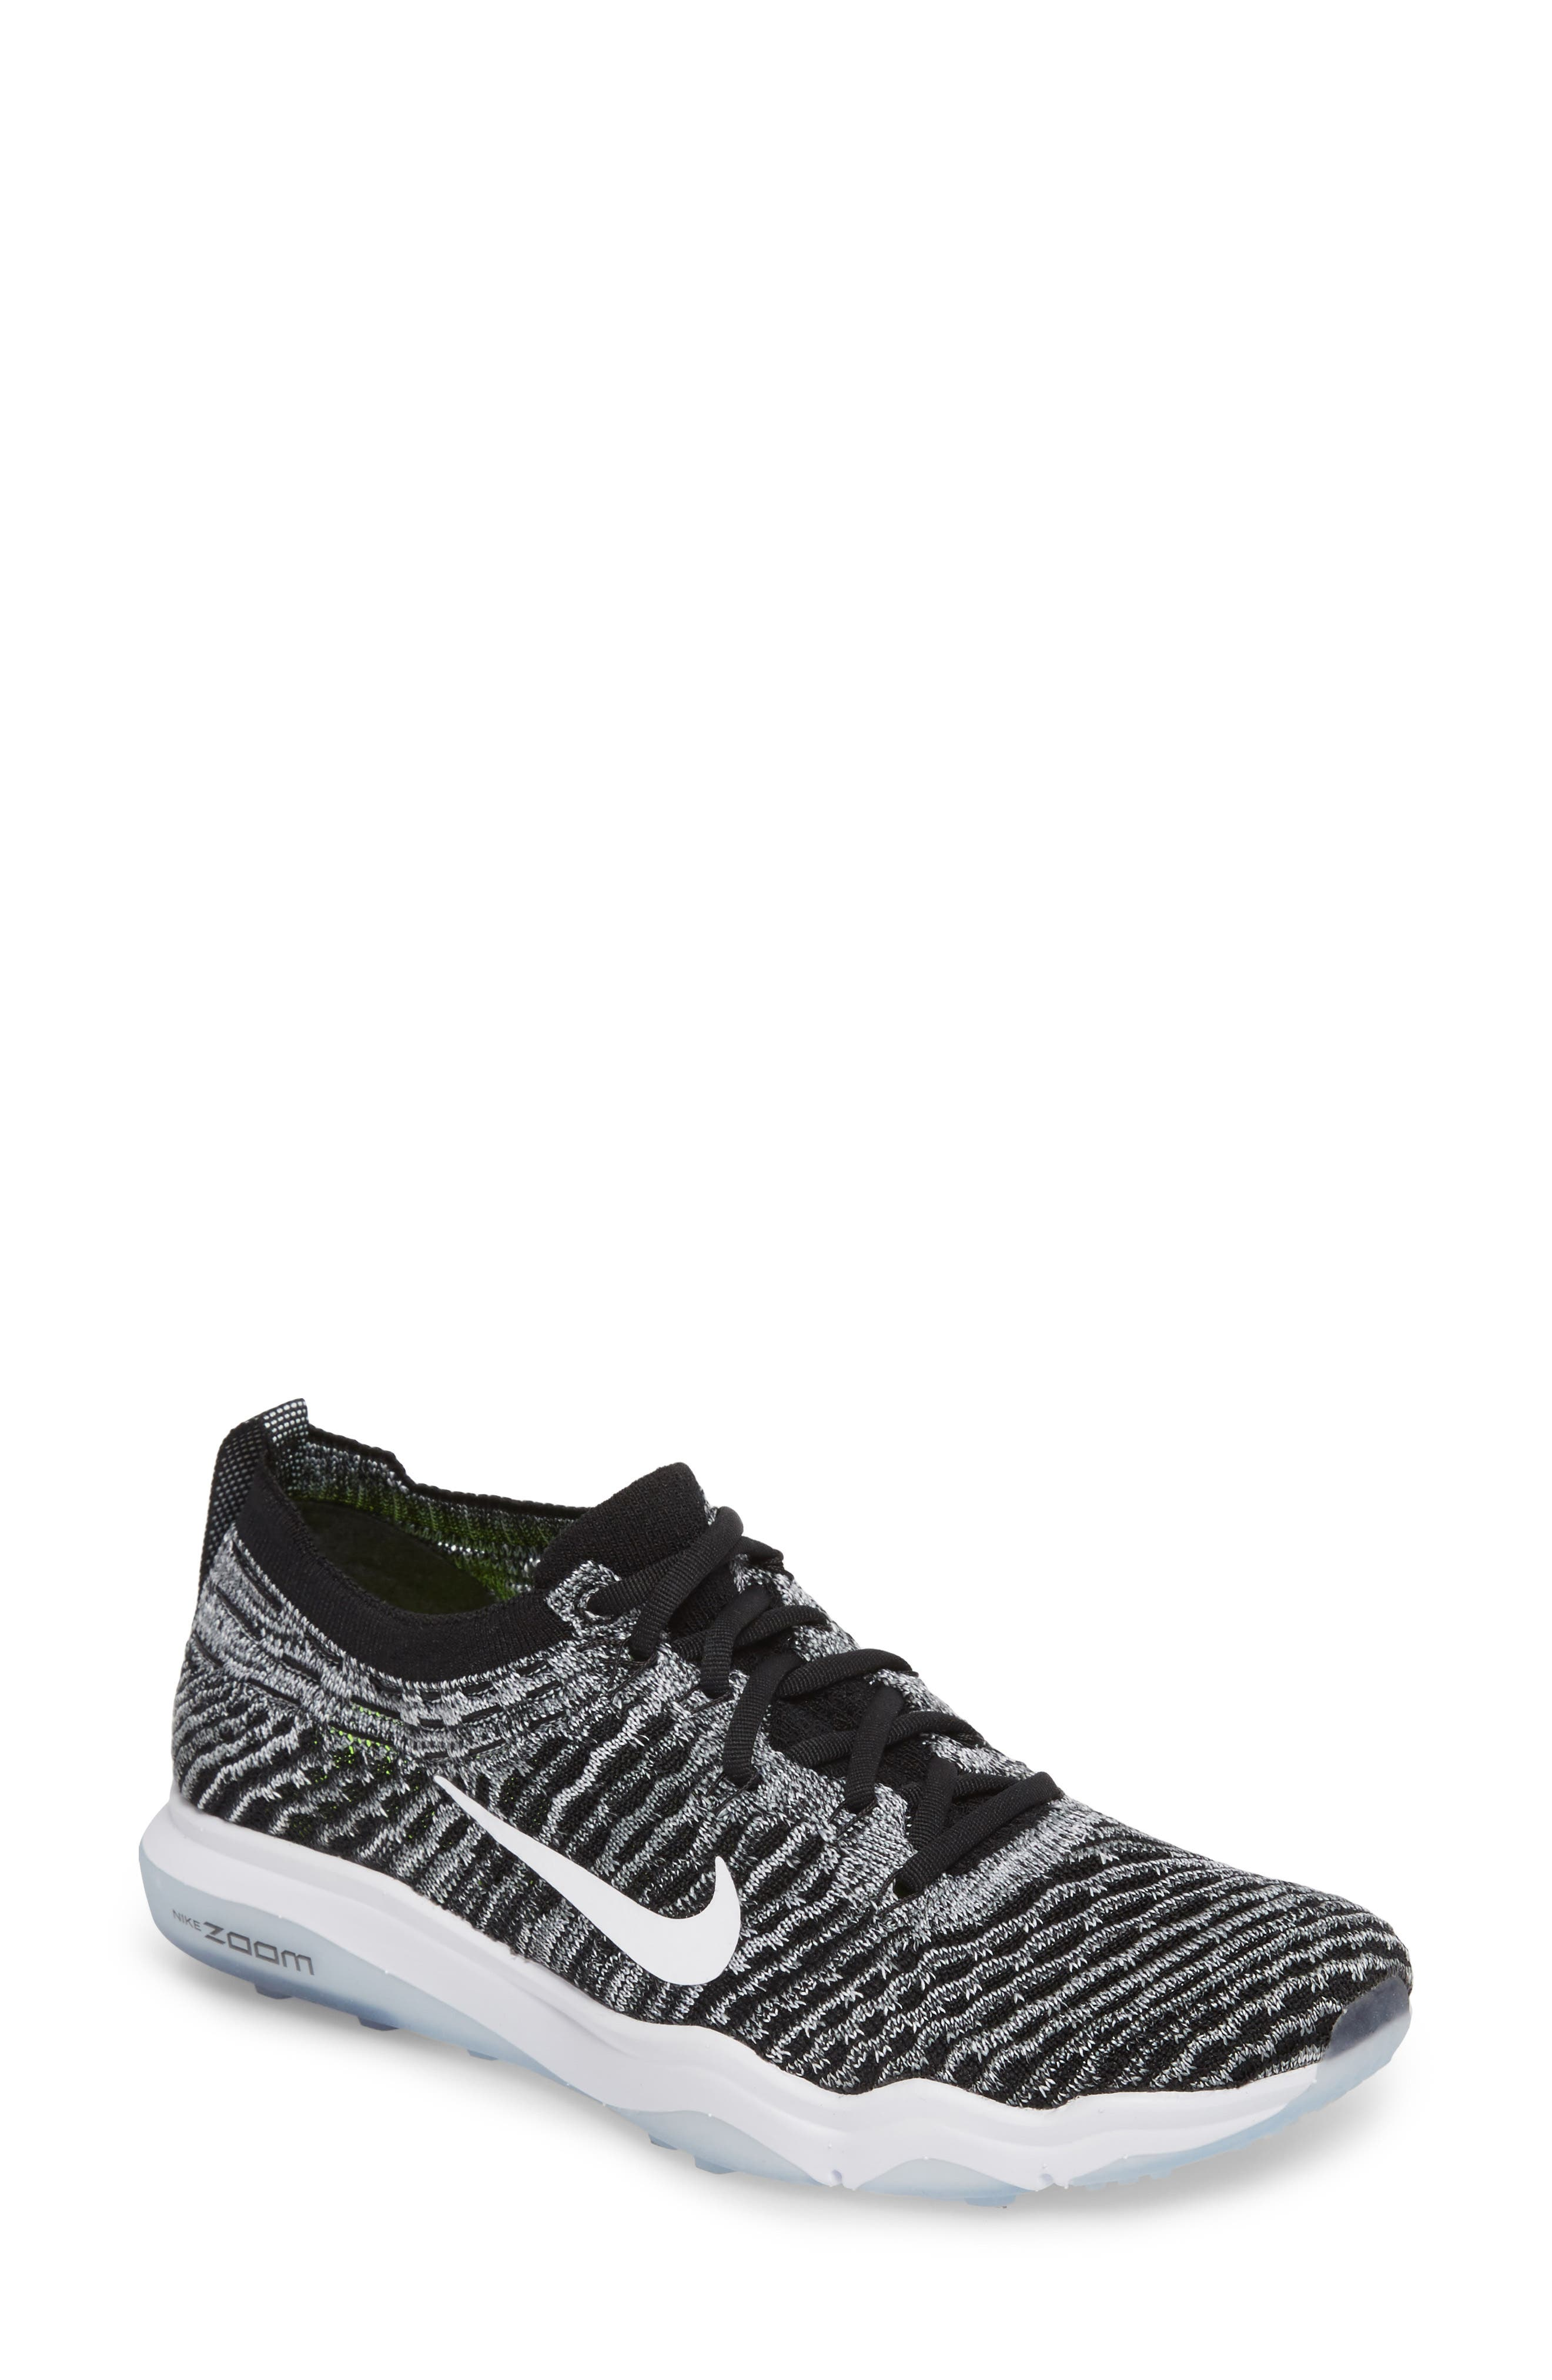 Air Zoom Fearless Flyknit Lux Training Shoe,                             Main thumbnail 1, color,                             Black/ White